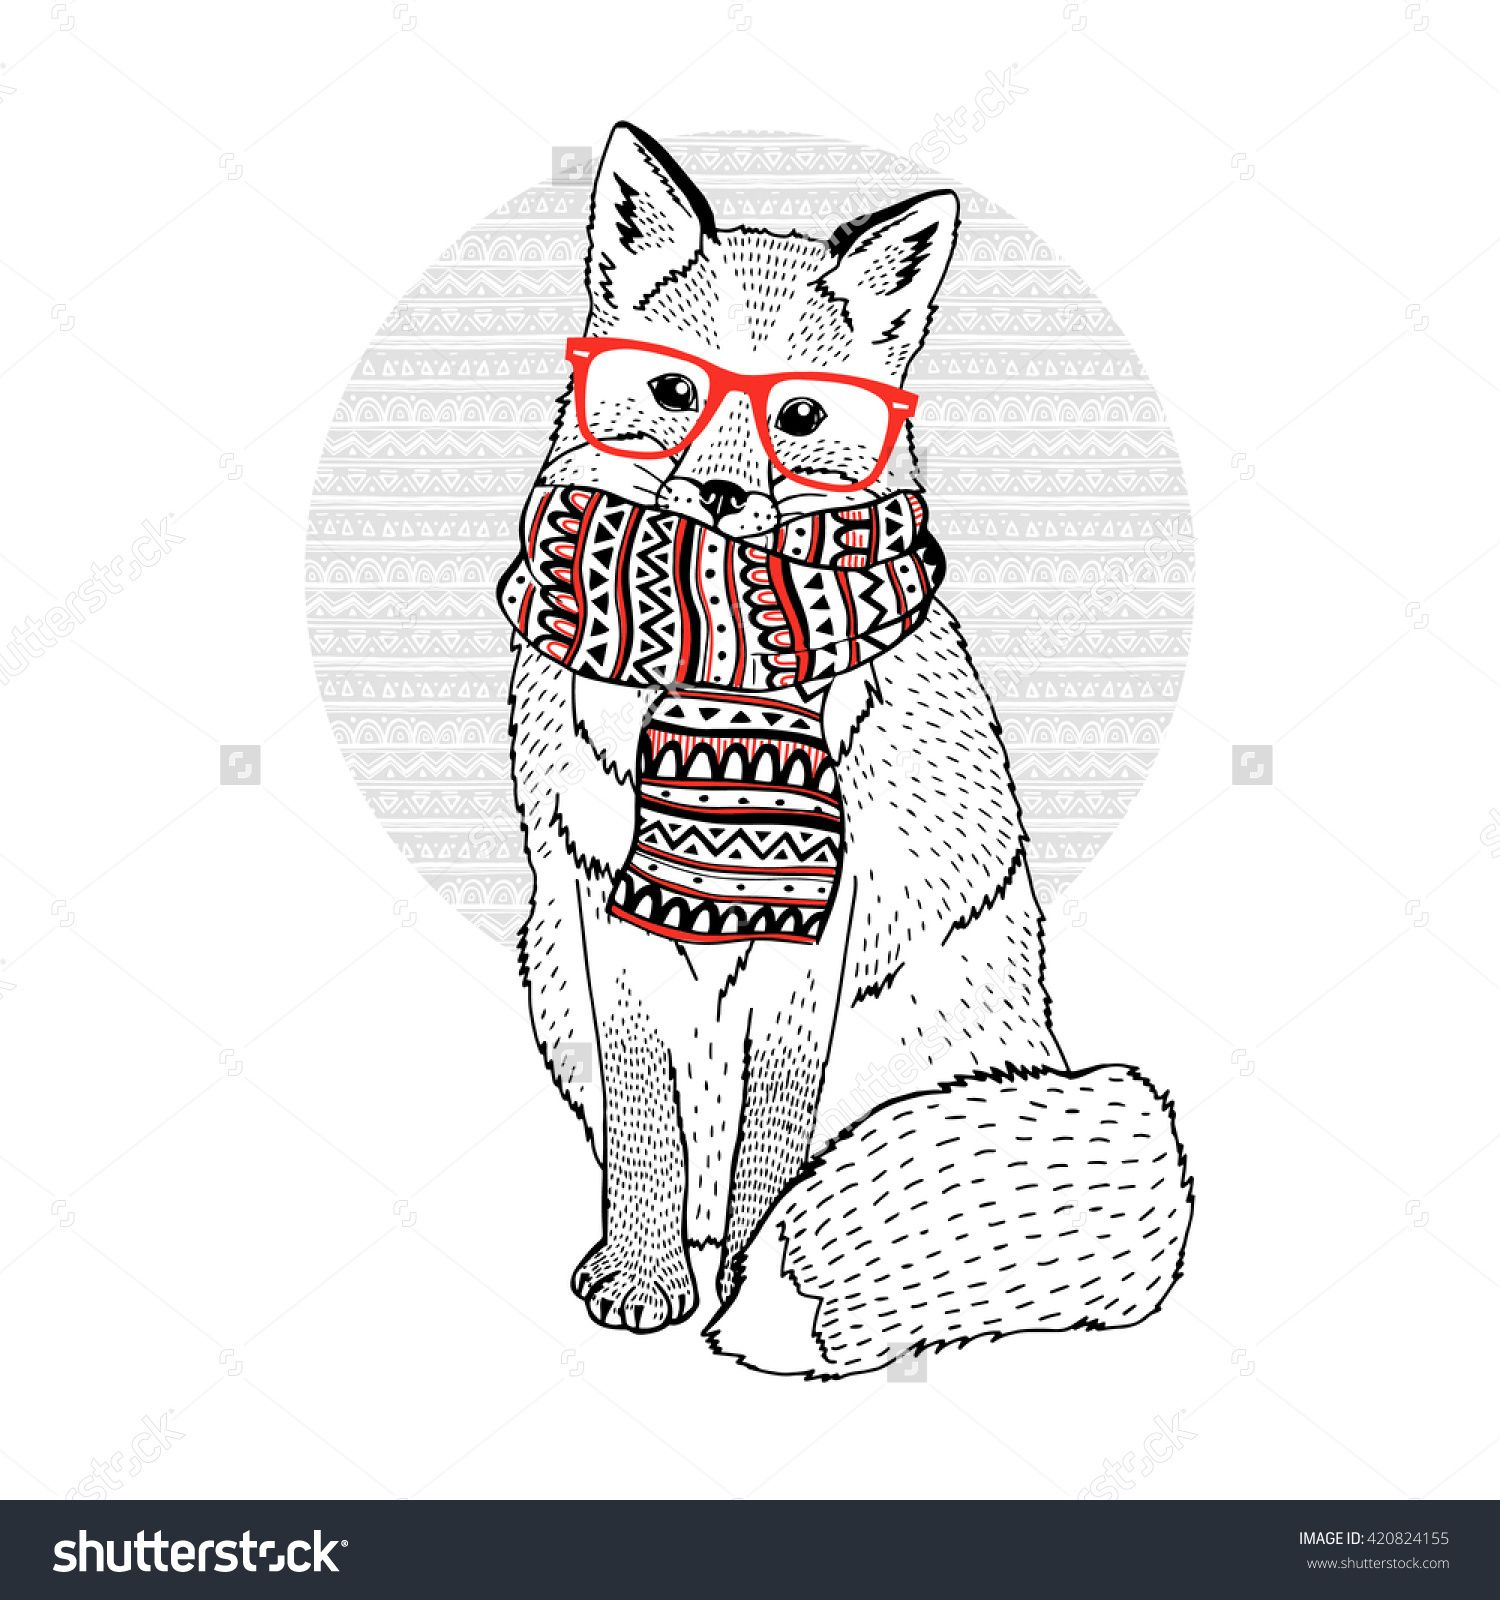 1500x1600 Cute Fox Wearing Hipster Glasses And Ornate Scarf, Decorative